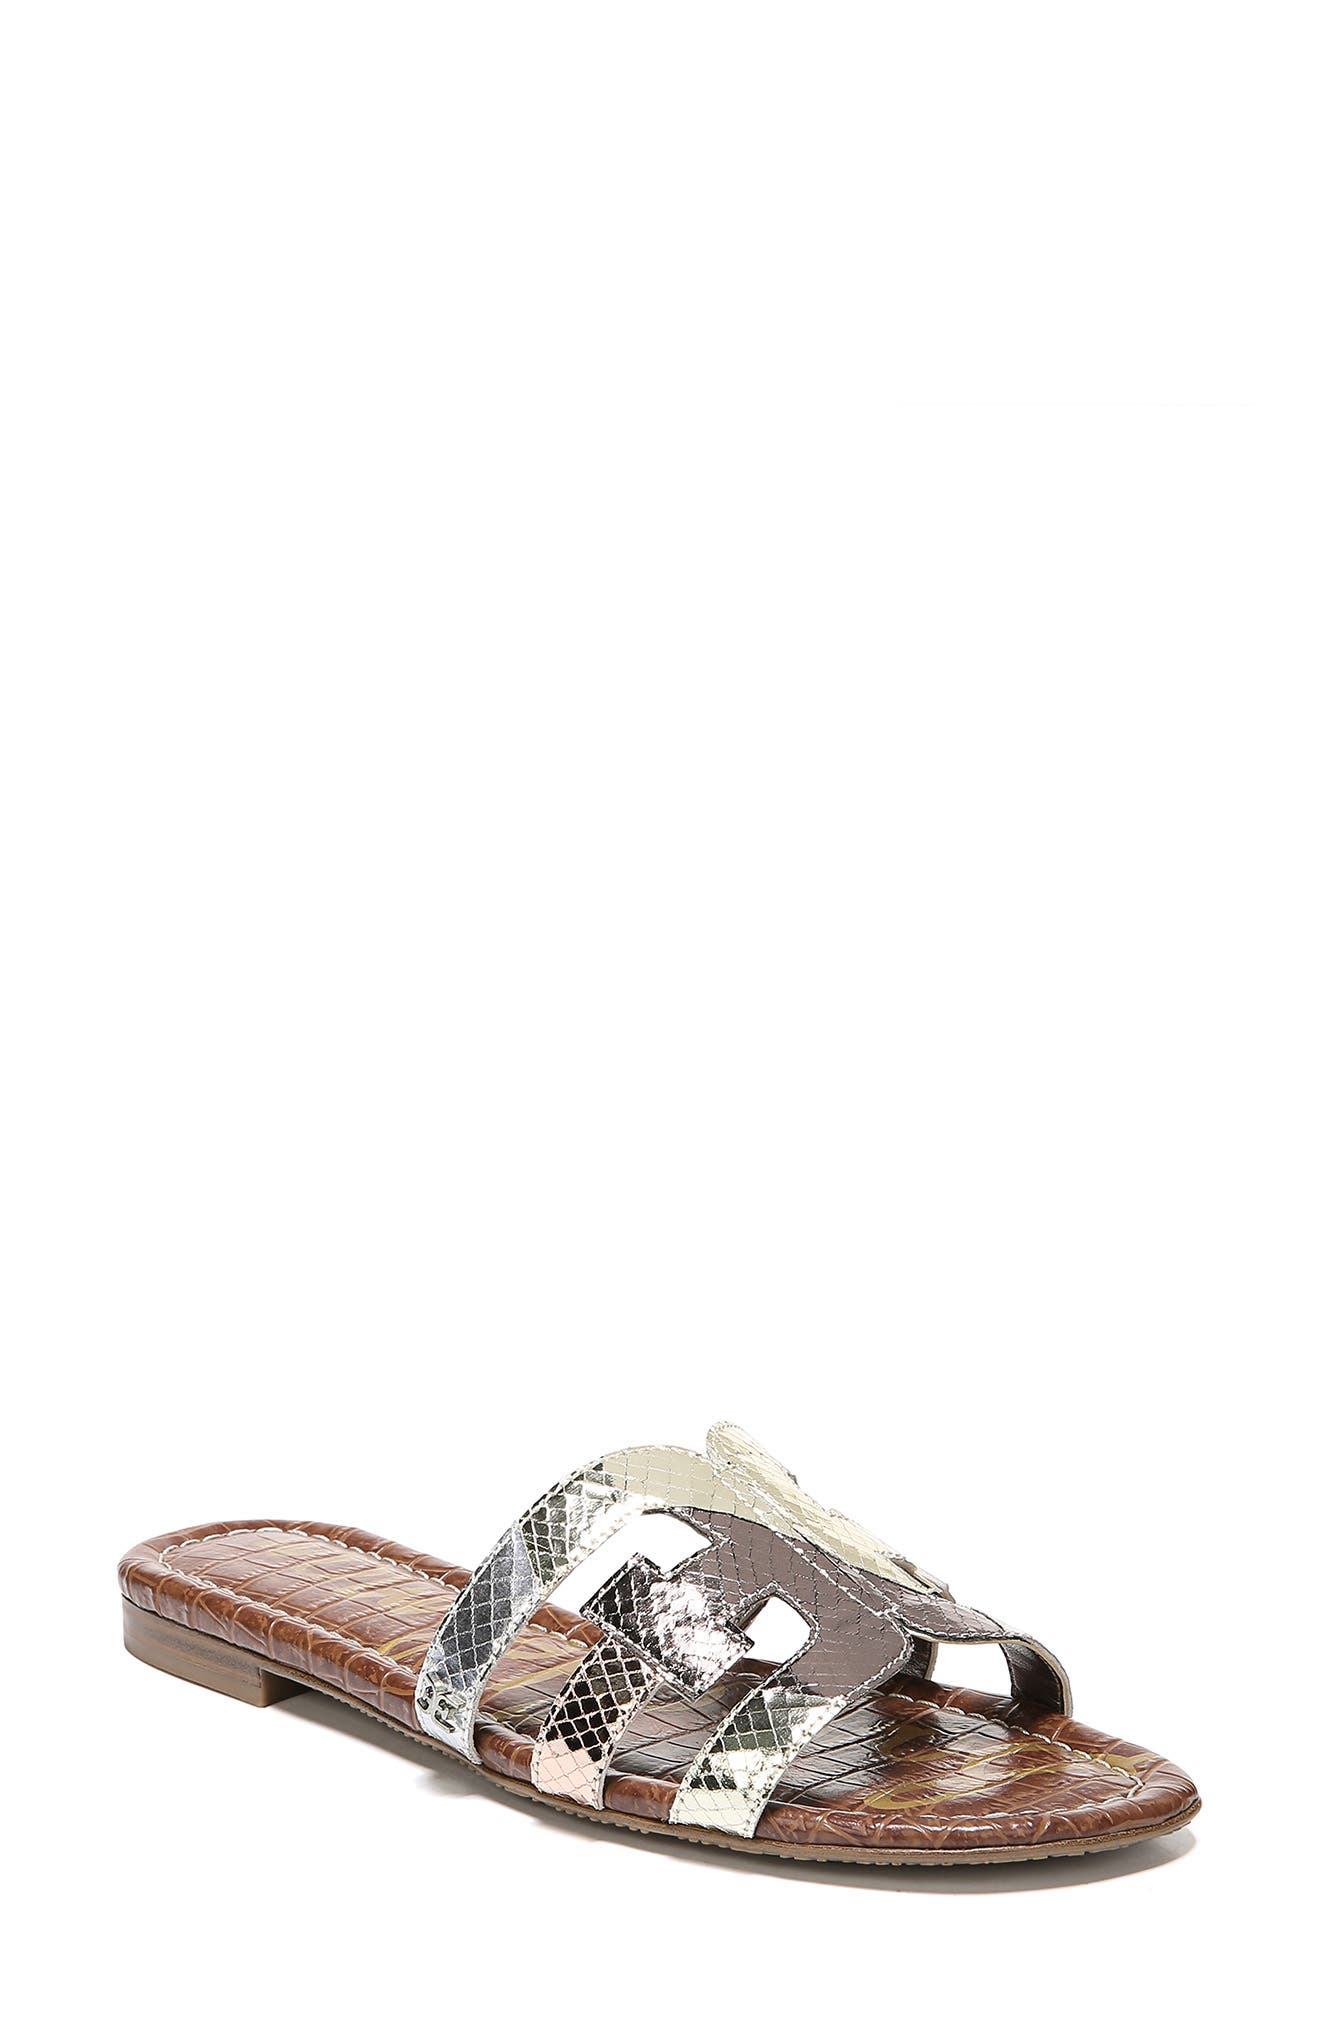 SAM EDELMAN, Bay Cutout Slide Sandal, Main thumbnail 1, color, METALLIC EMBOSSED LEATHER